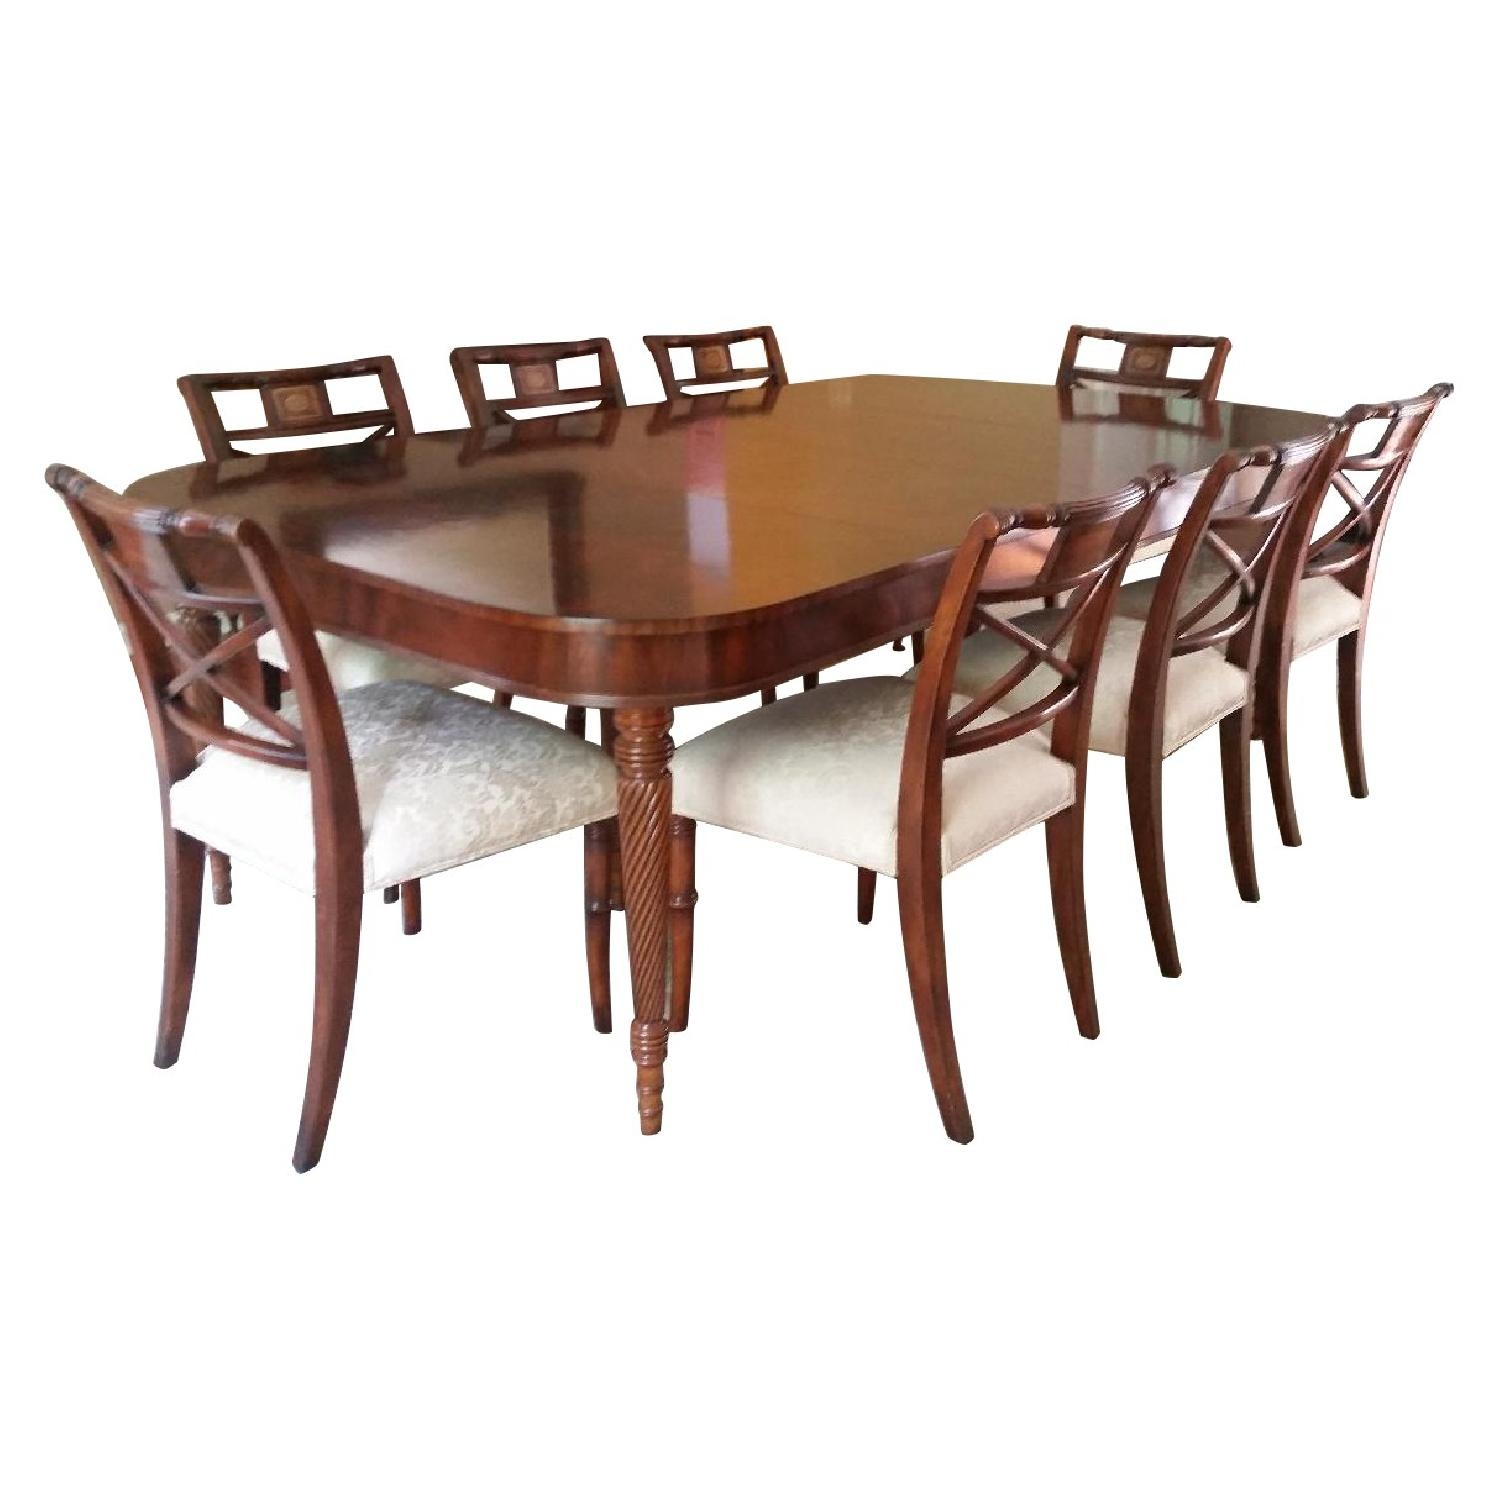 Maitland Smith Crotch Mahogany Dining Room Table W/ 8 Chairs ...